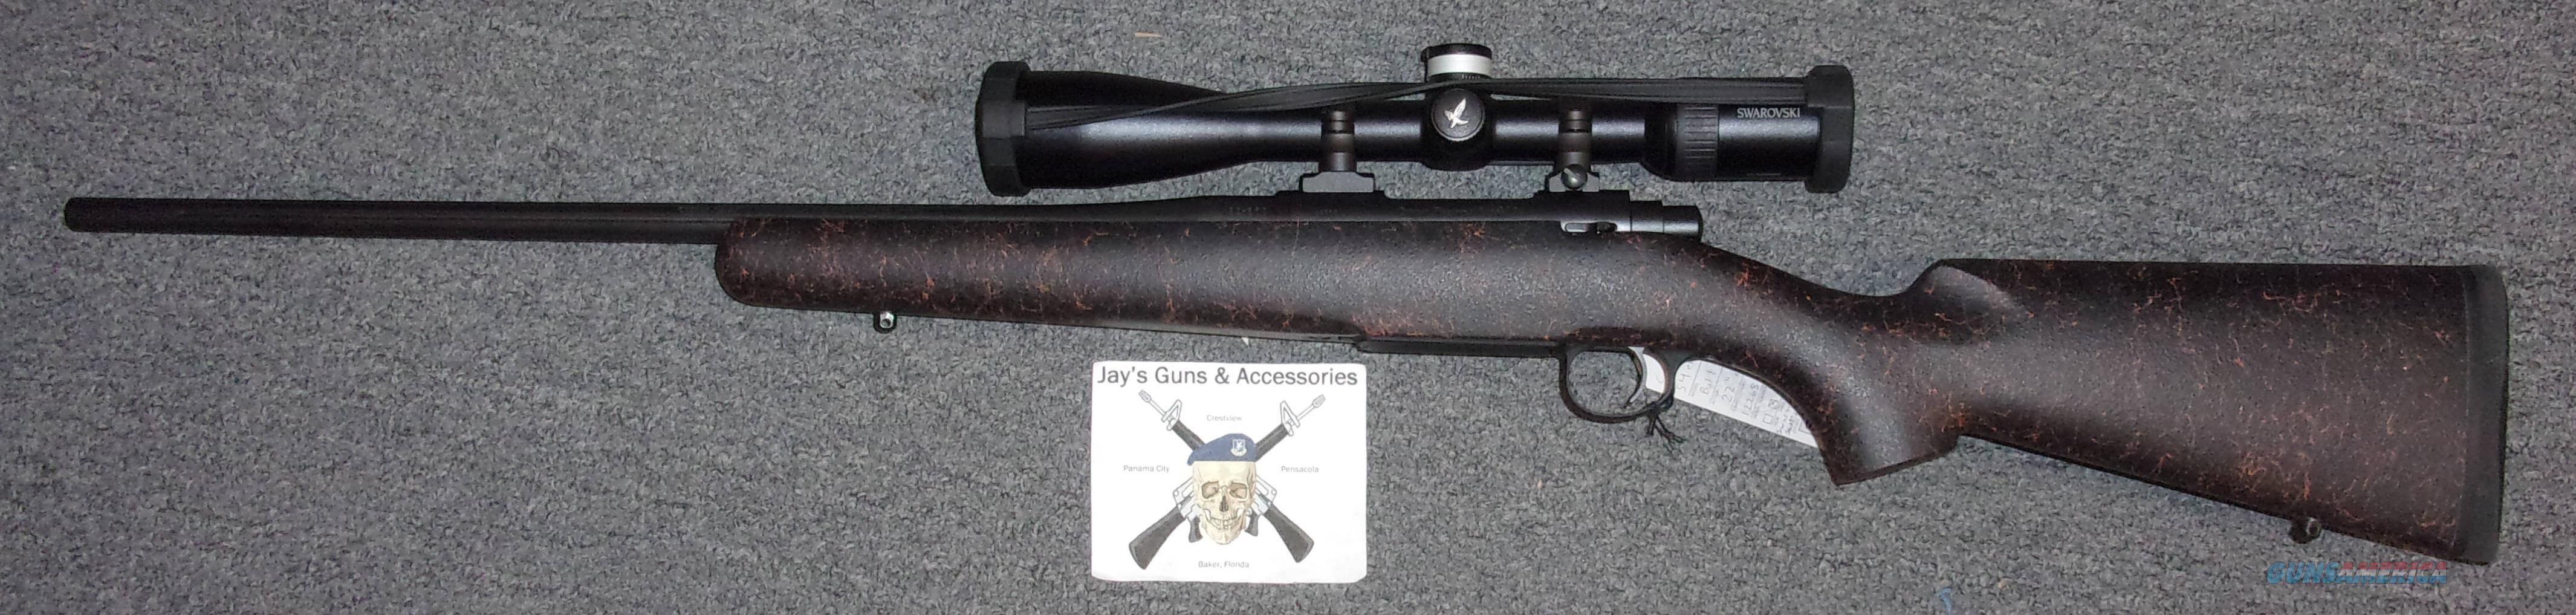 Cooper Firearms 54 Excalibur w/Swarovski Scope  Guns > Rifles > Cooper Arms Rifles